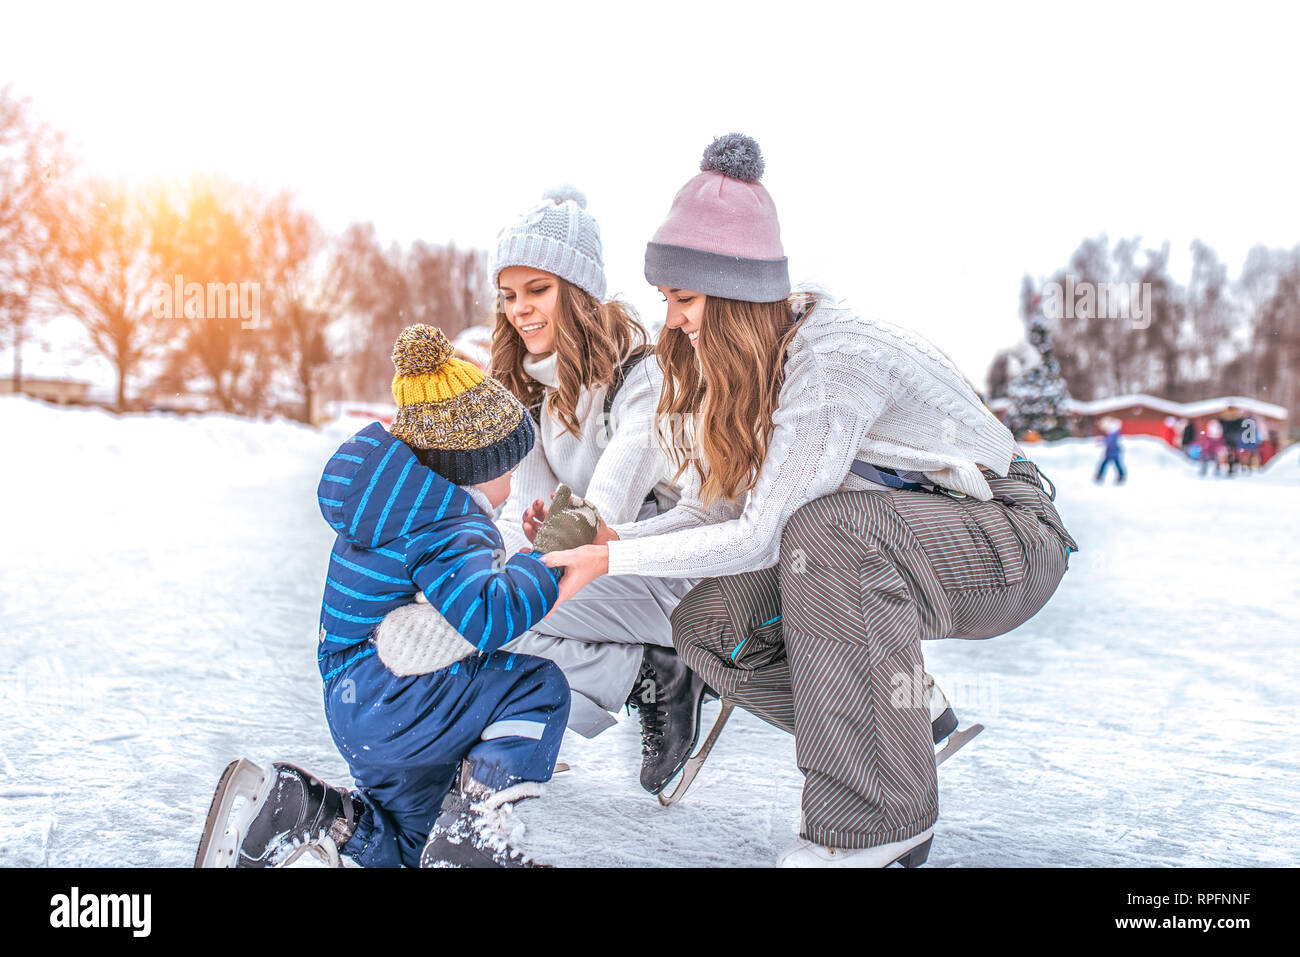 Young mother, two women, girlfriends raise son boy for 2-3 years, ice skating rink in winter city park. Concept first lesson on skating support, help - Stock Image